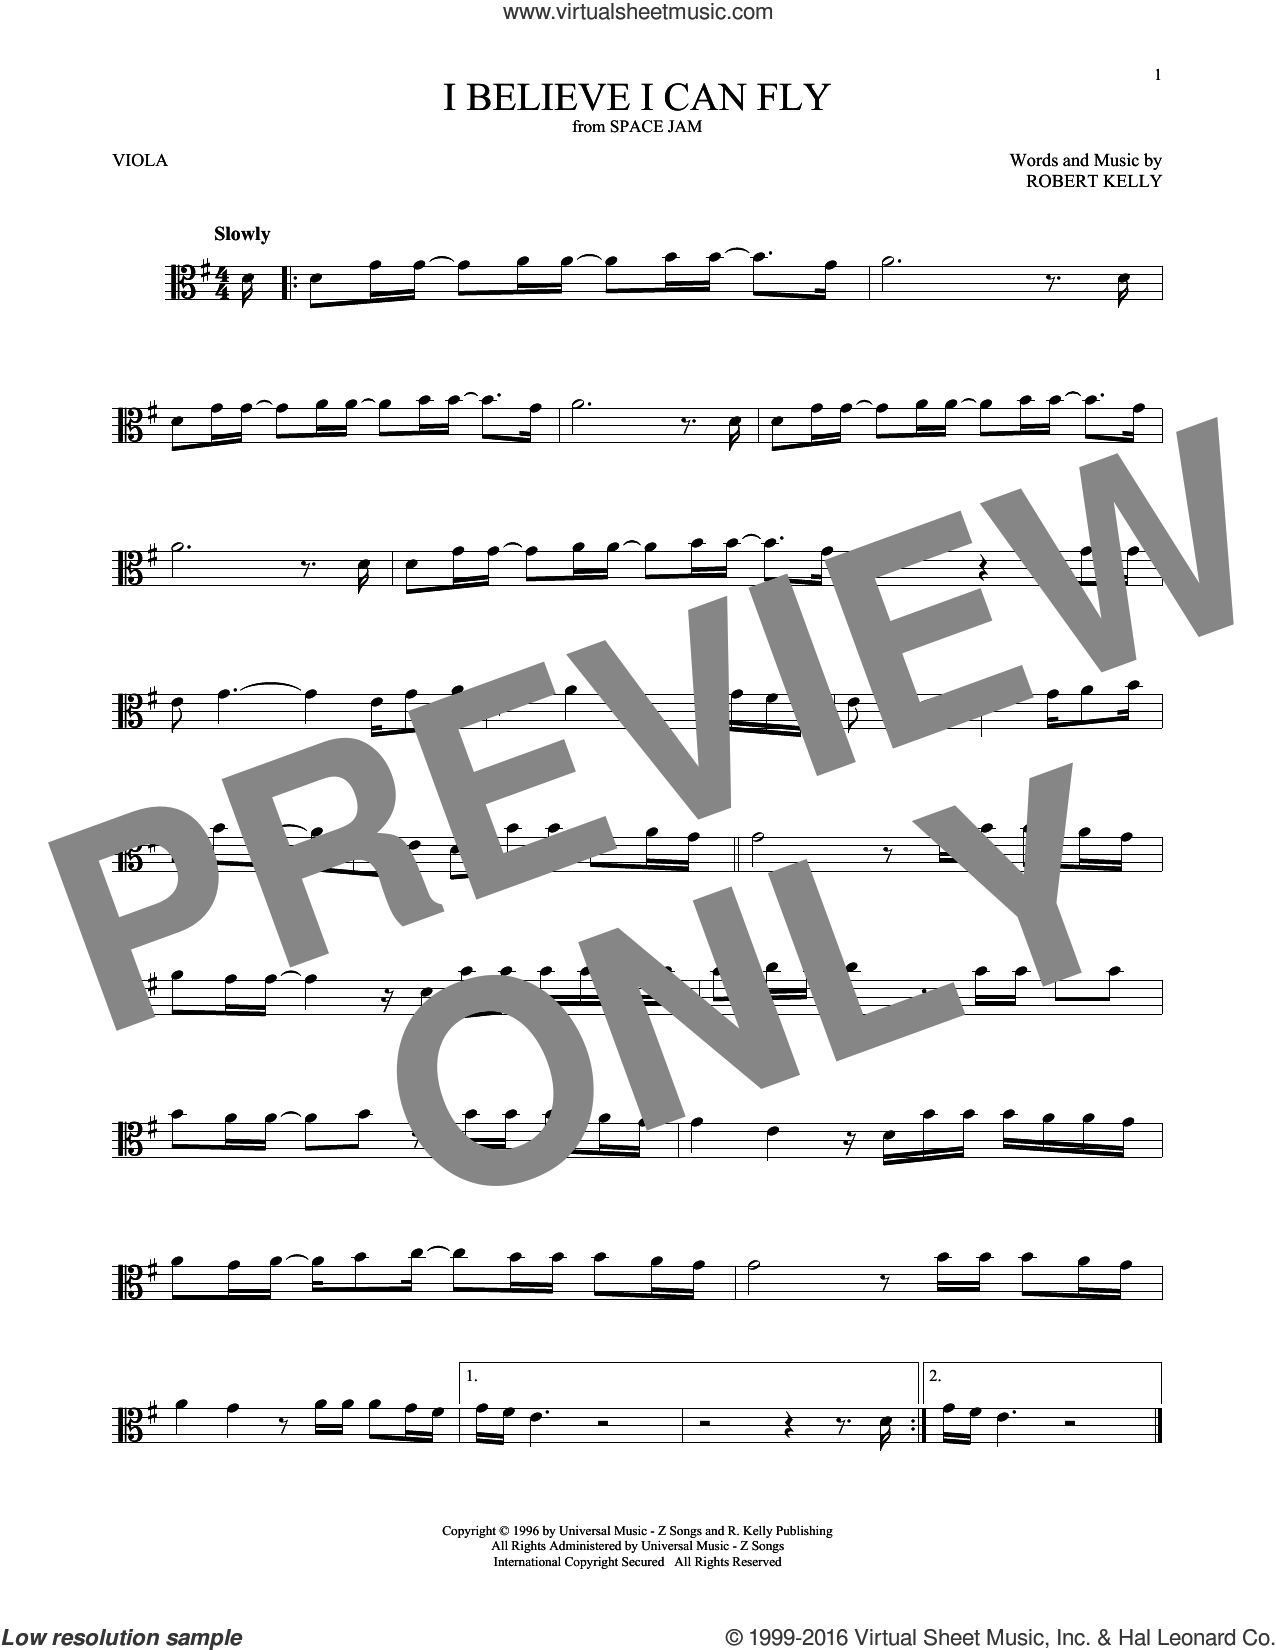 I Believe I Can Fly sheet music for viola solo by Robert Kelly and Jermaine Paul, intermediate skill level